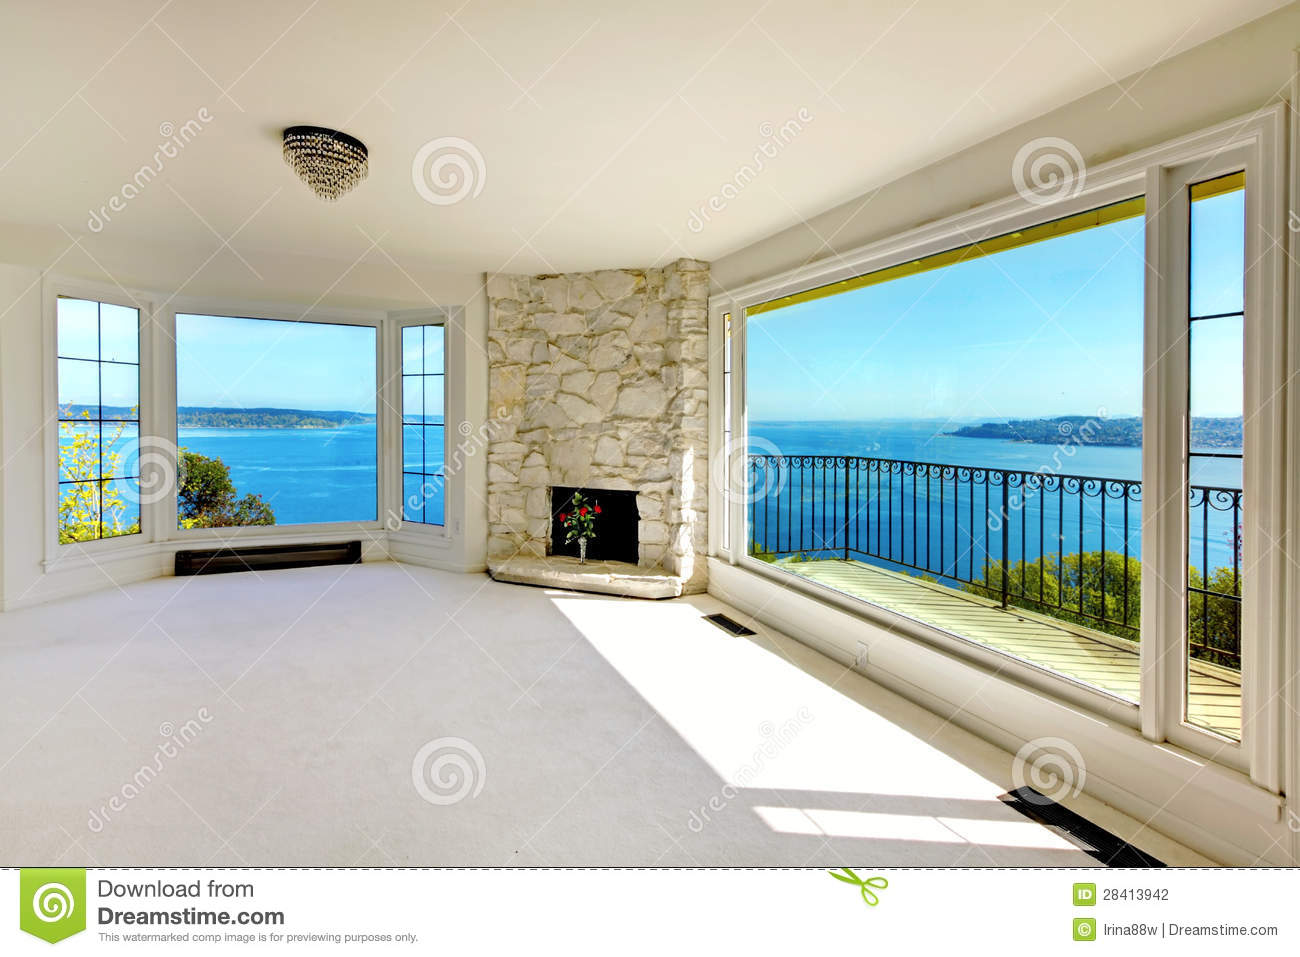 Luxury real estate bedroom with water view and fireplace Luxury fireplaces luxury homes